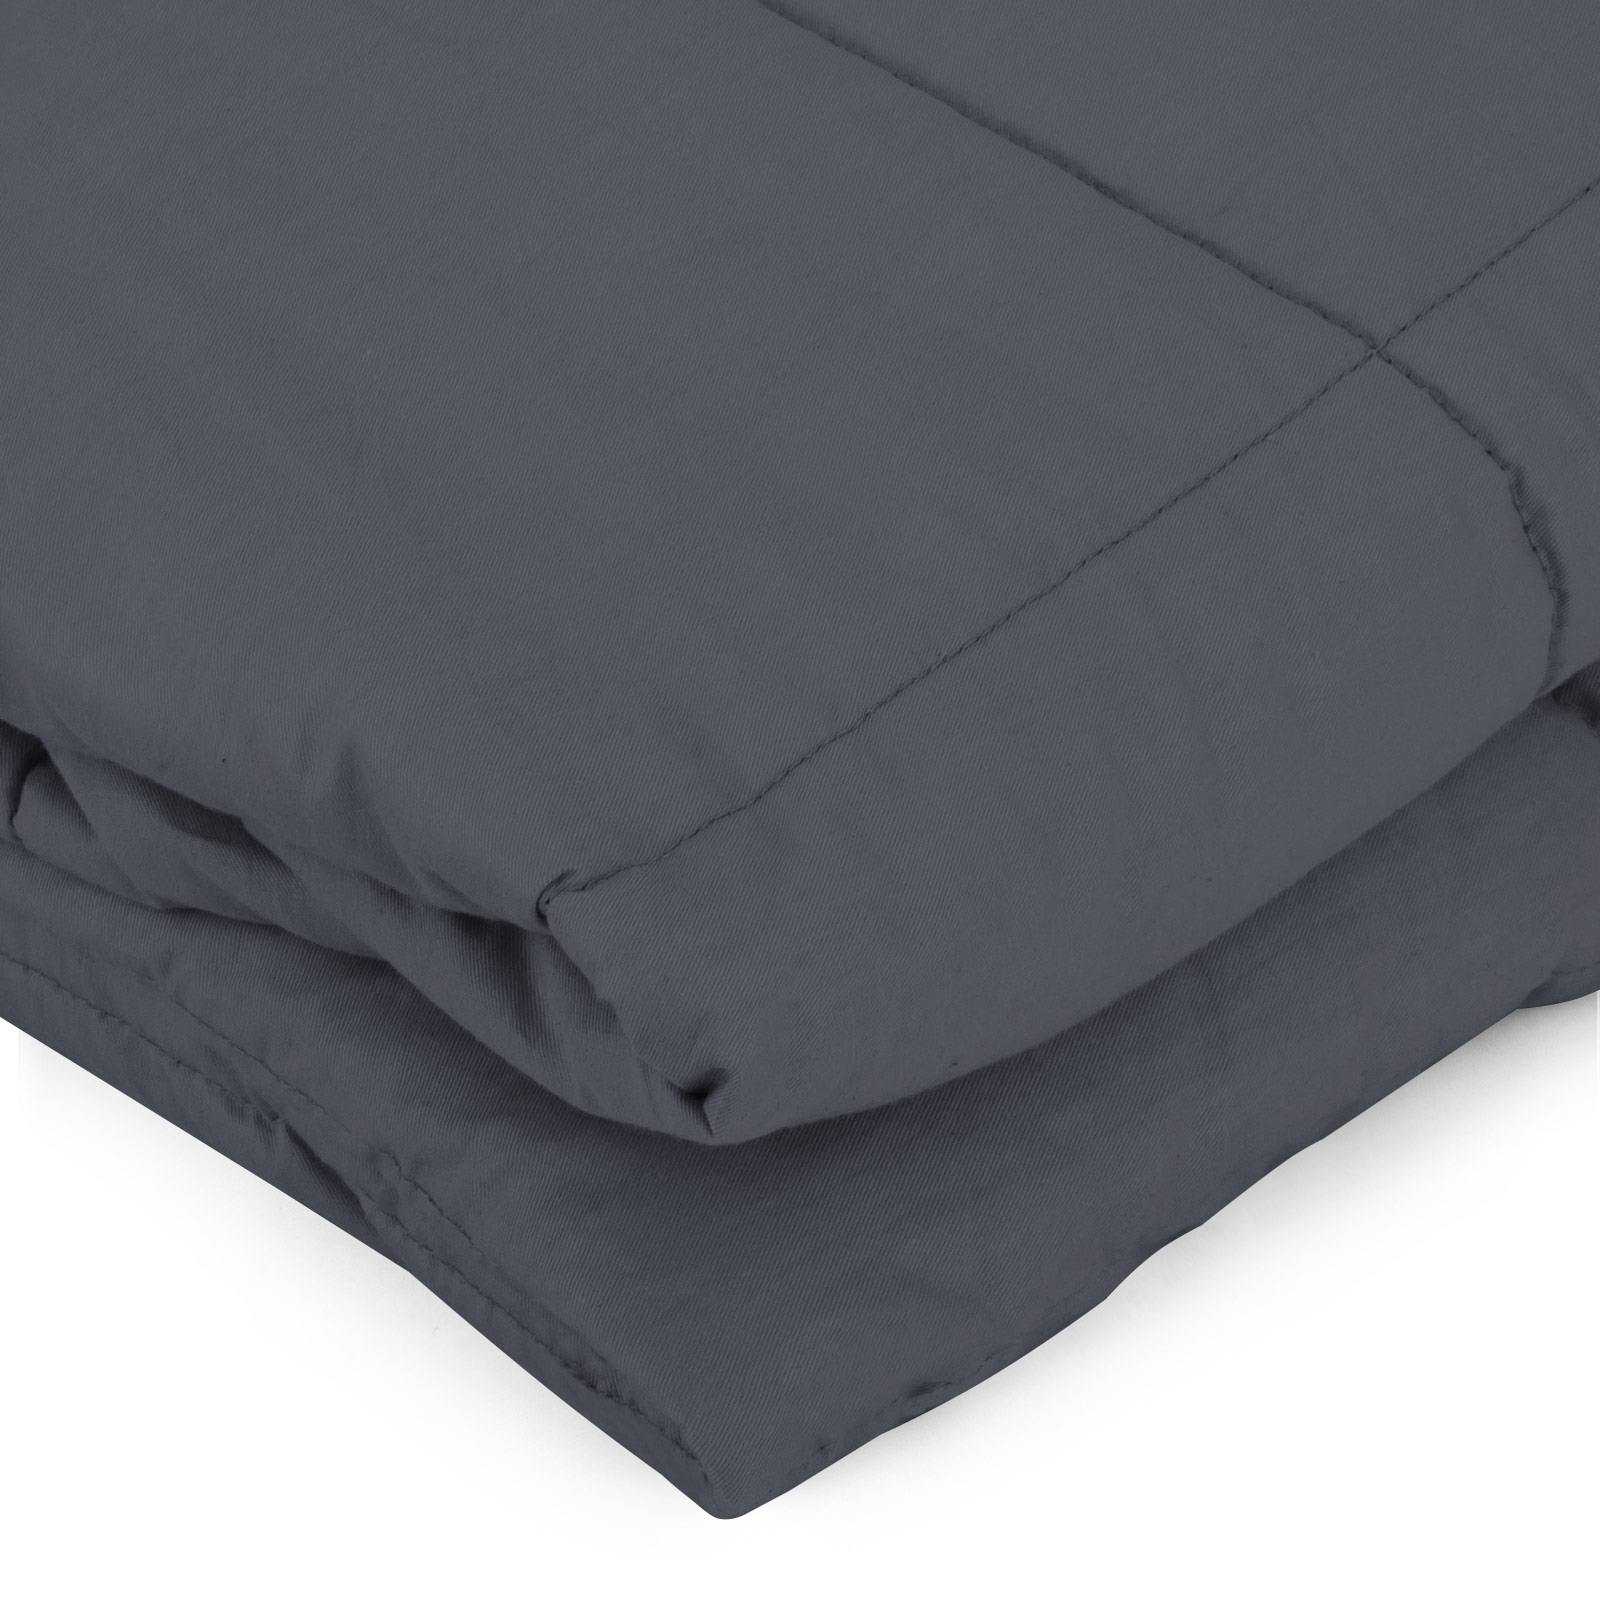 Heavy Gravity Sensory Weighted Blanket 15lbs Gentle